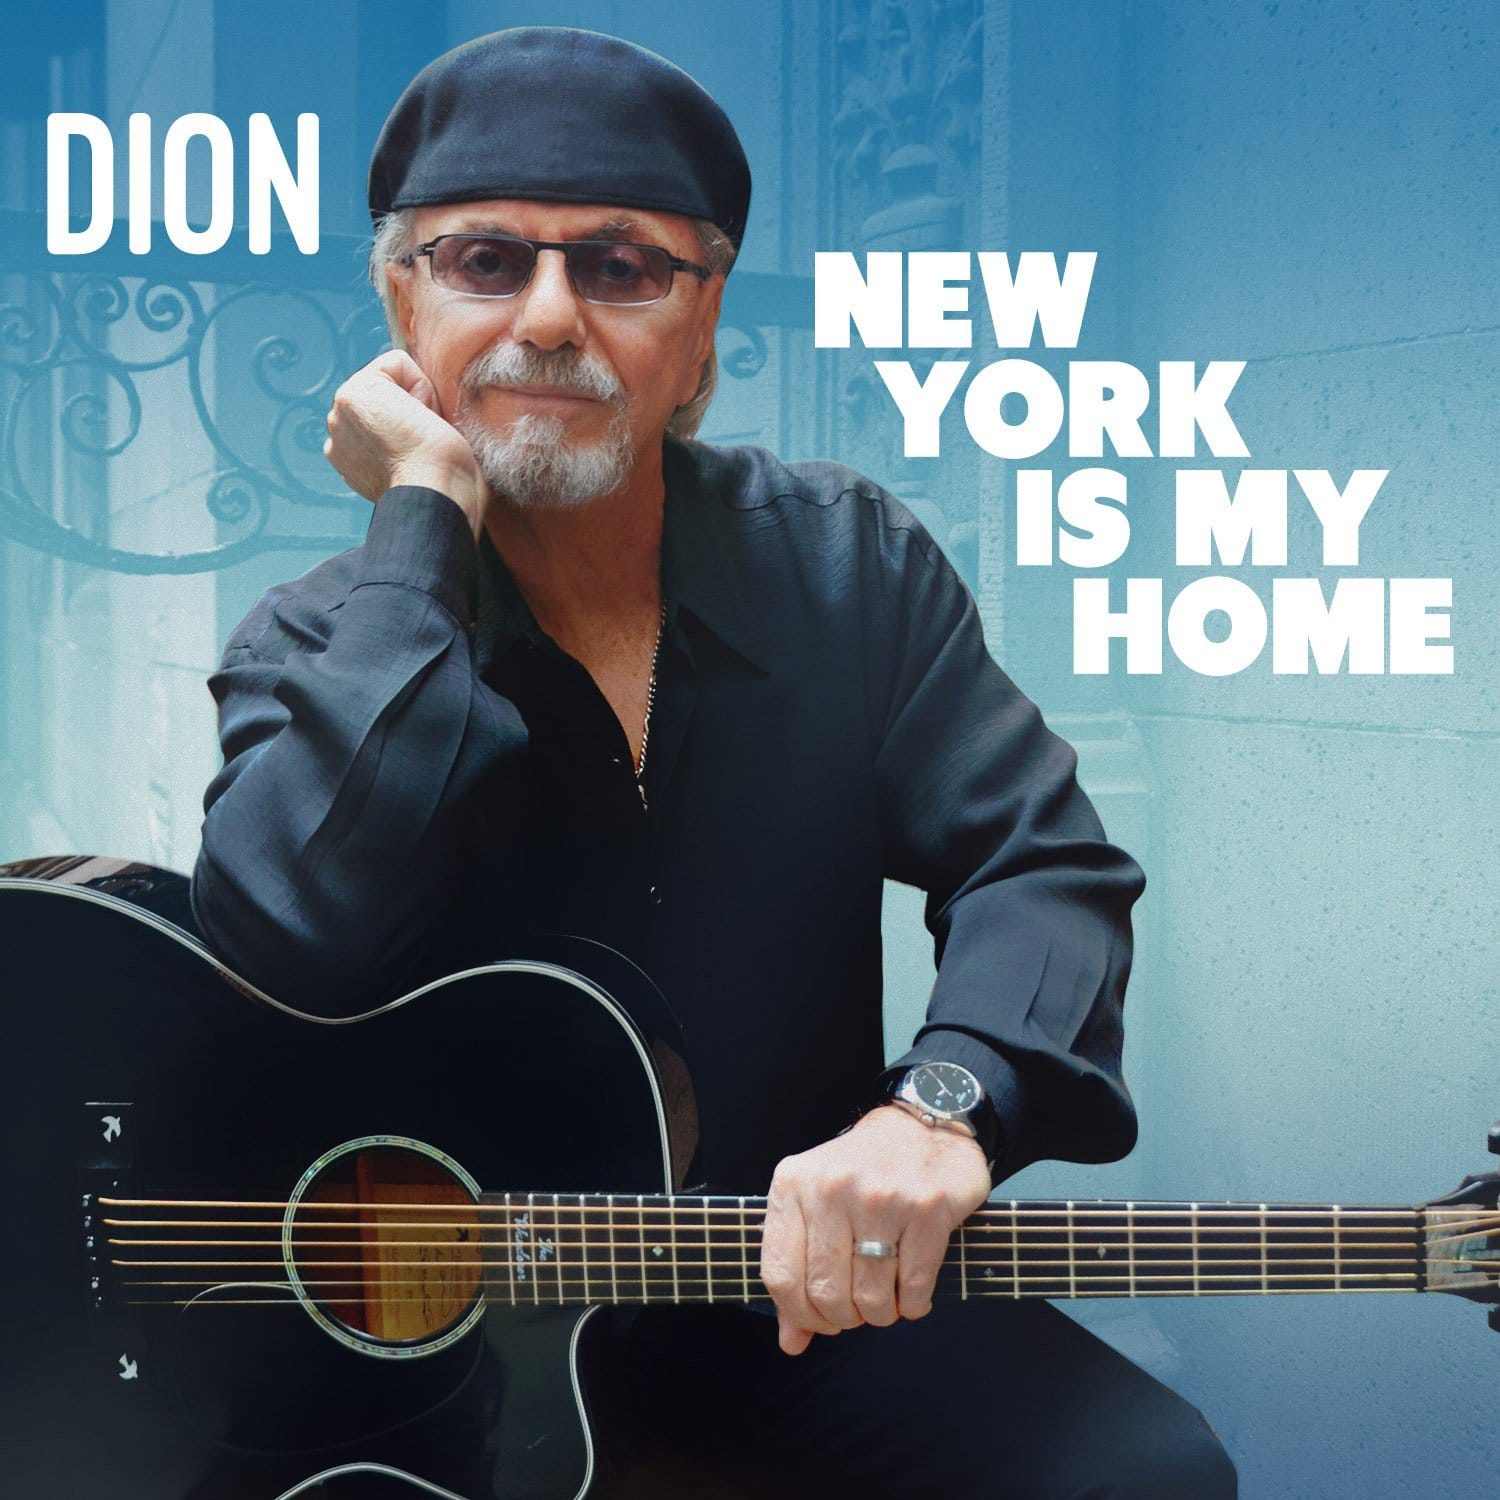 Dion new york is my home american songwriter for My new home